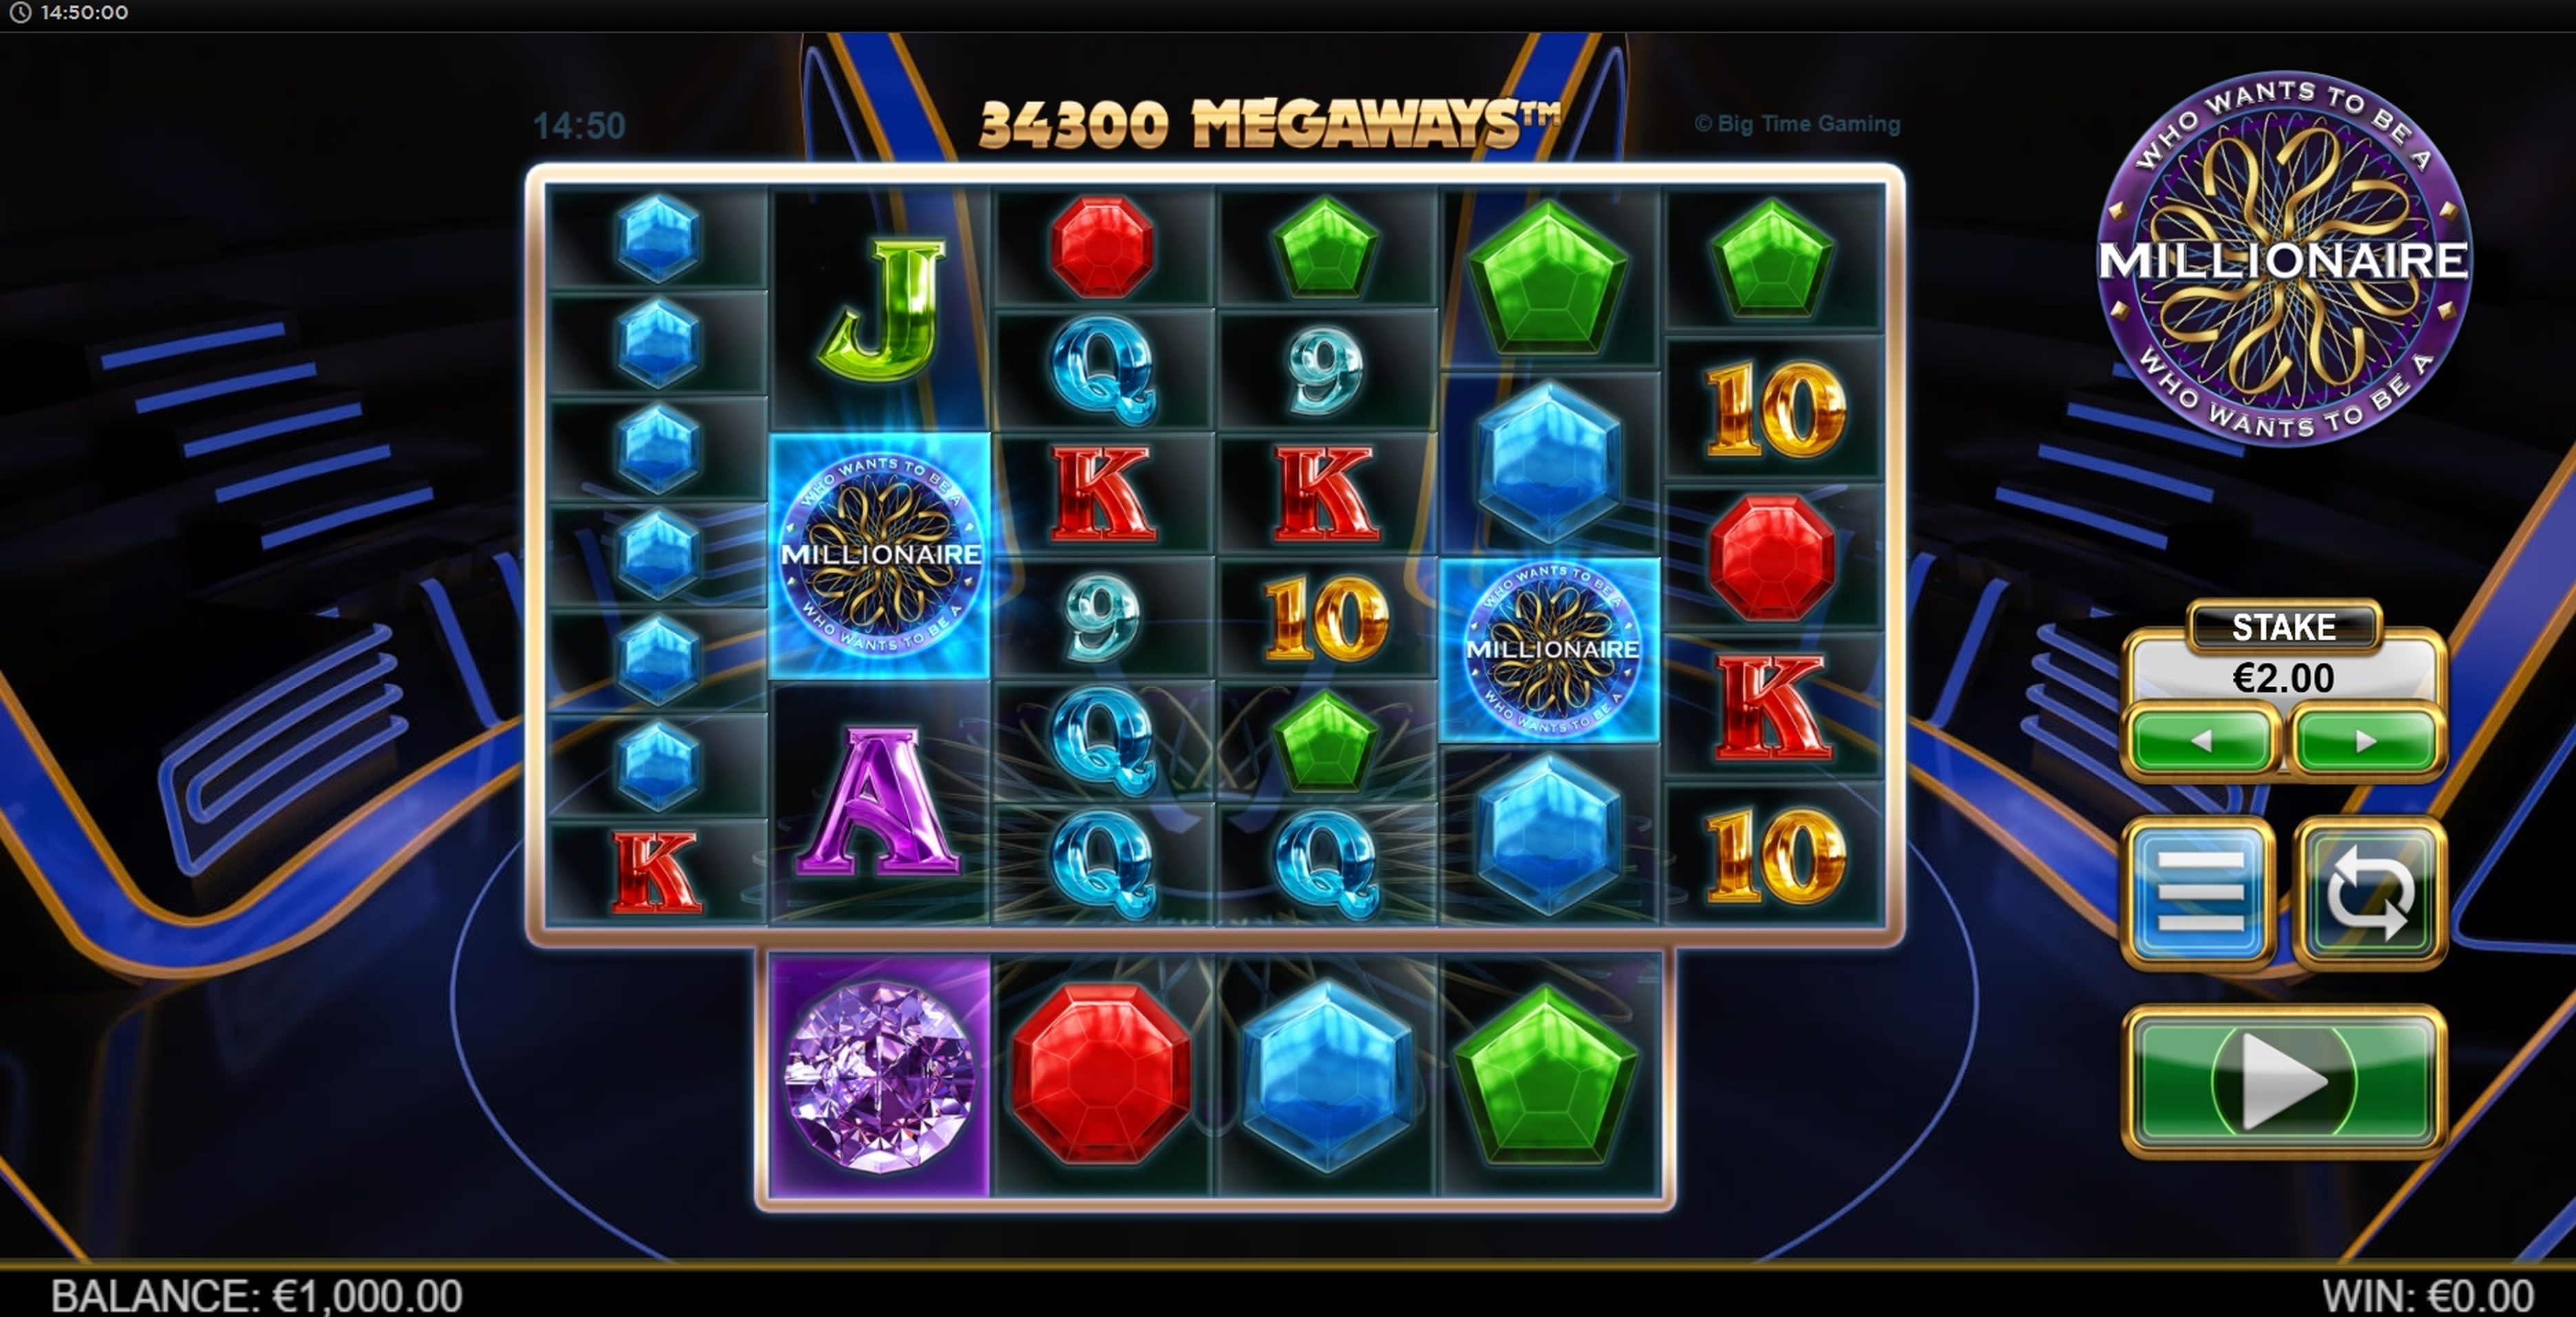 Reels in Who Wants To Be A Millionaire Megaways Slot Game by Big Time Gaming